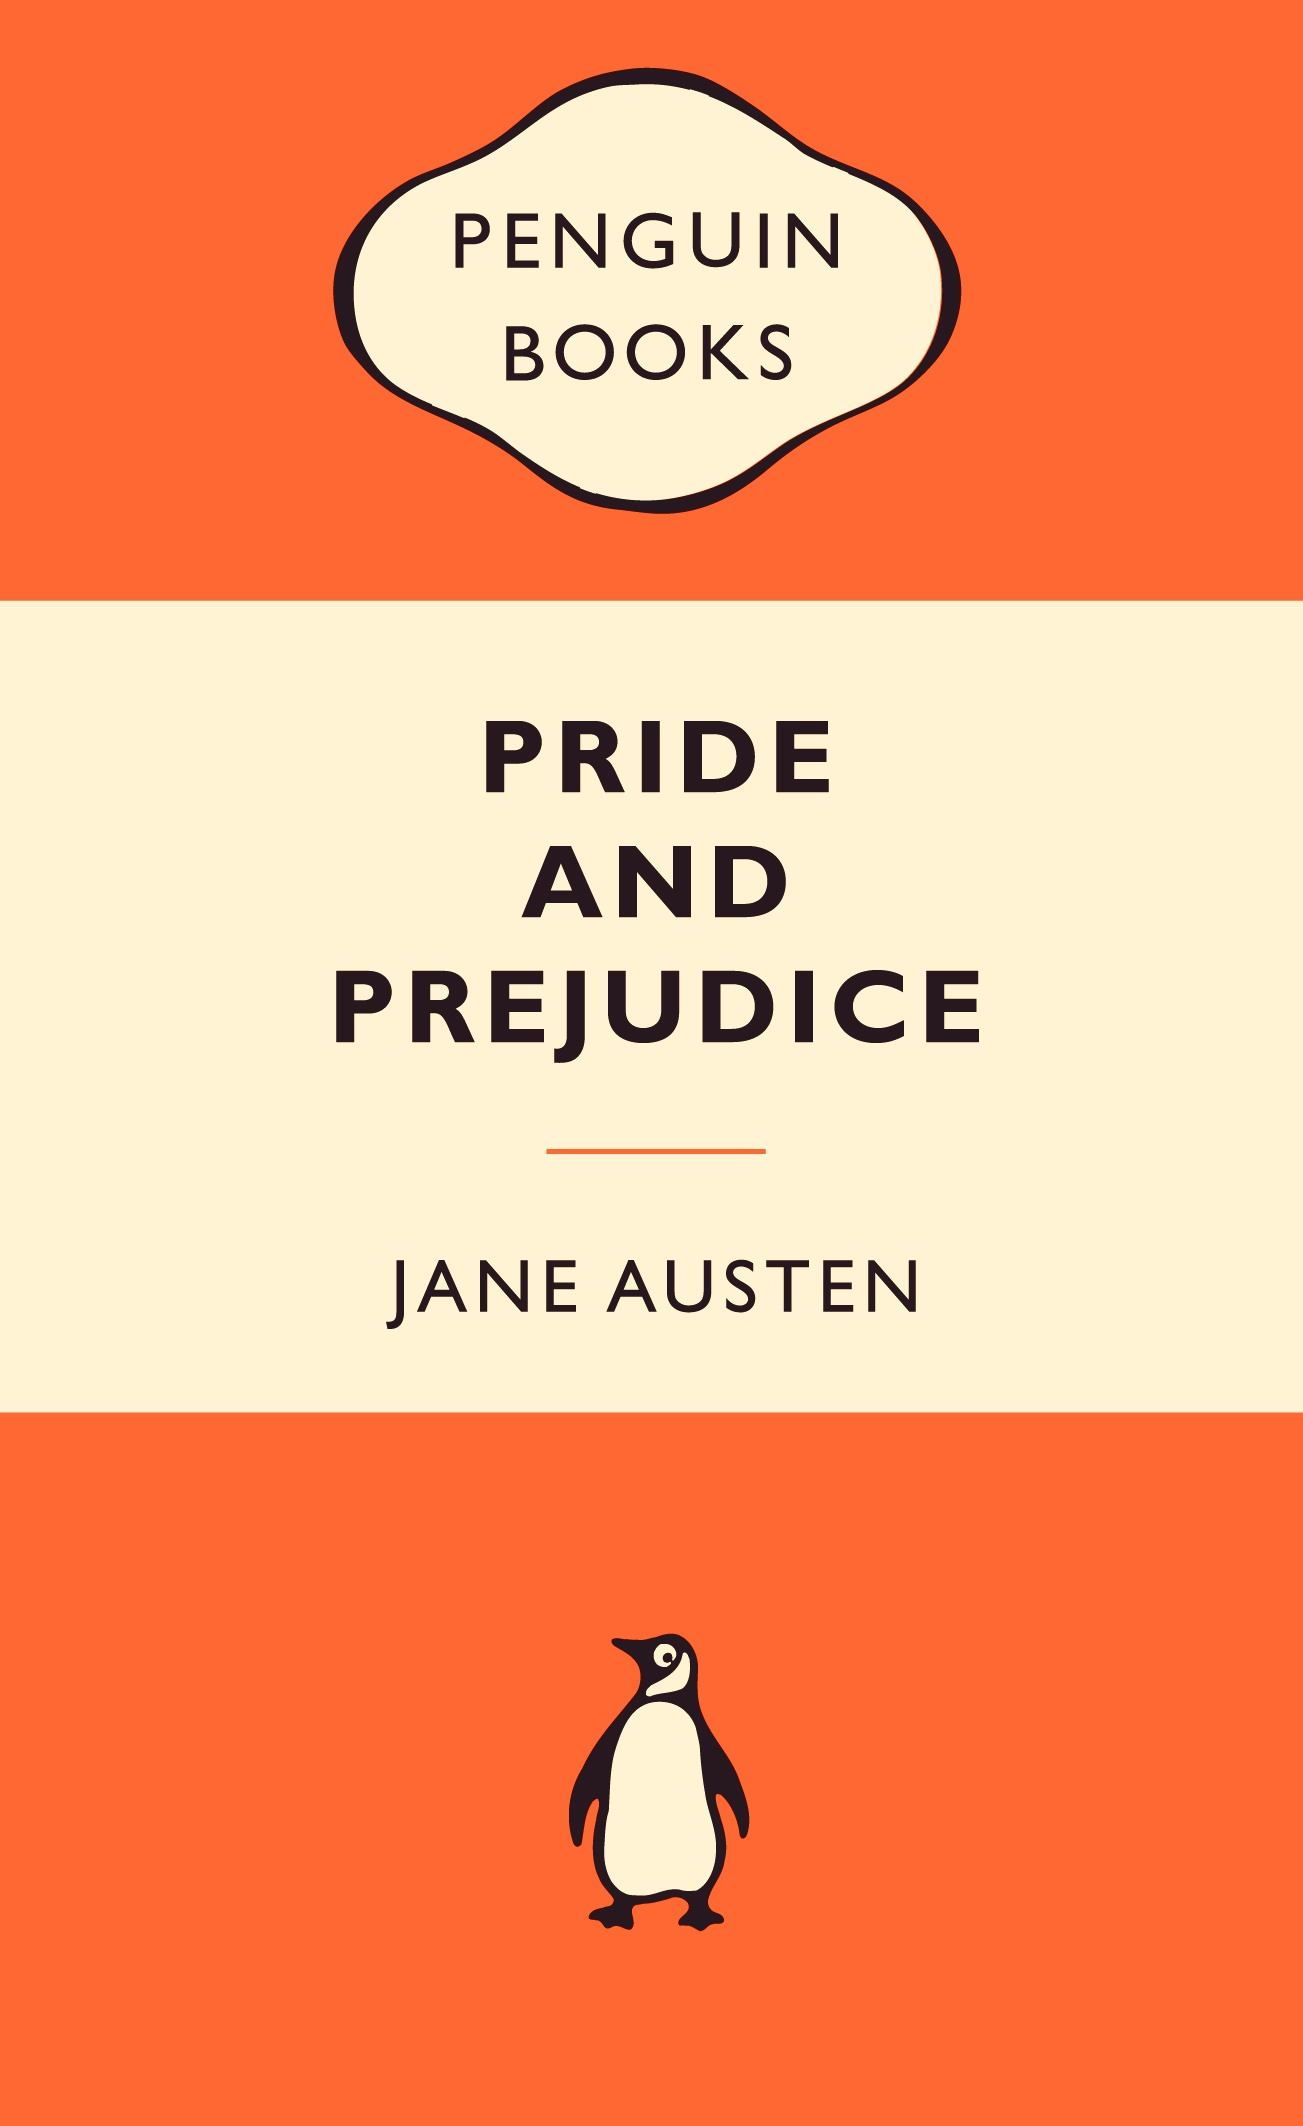 marriage in the novel pride and prejudice by jane austen Pride and prejudice by jane austen pride and prejudice was published in 1813 during the regency period from a woman's point of view, marriage was seen as the only honourable provision for well-educated young women of small fortune.